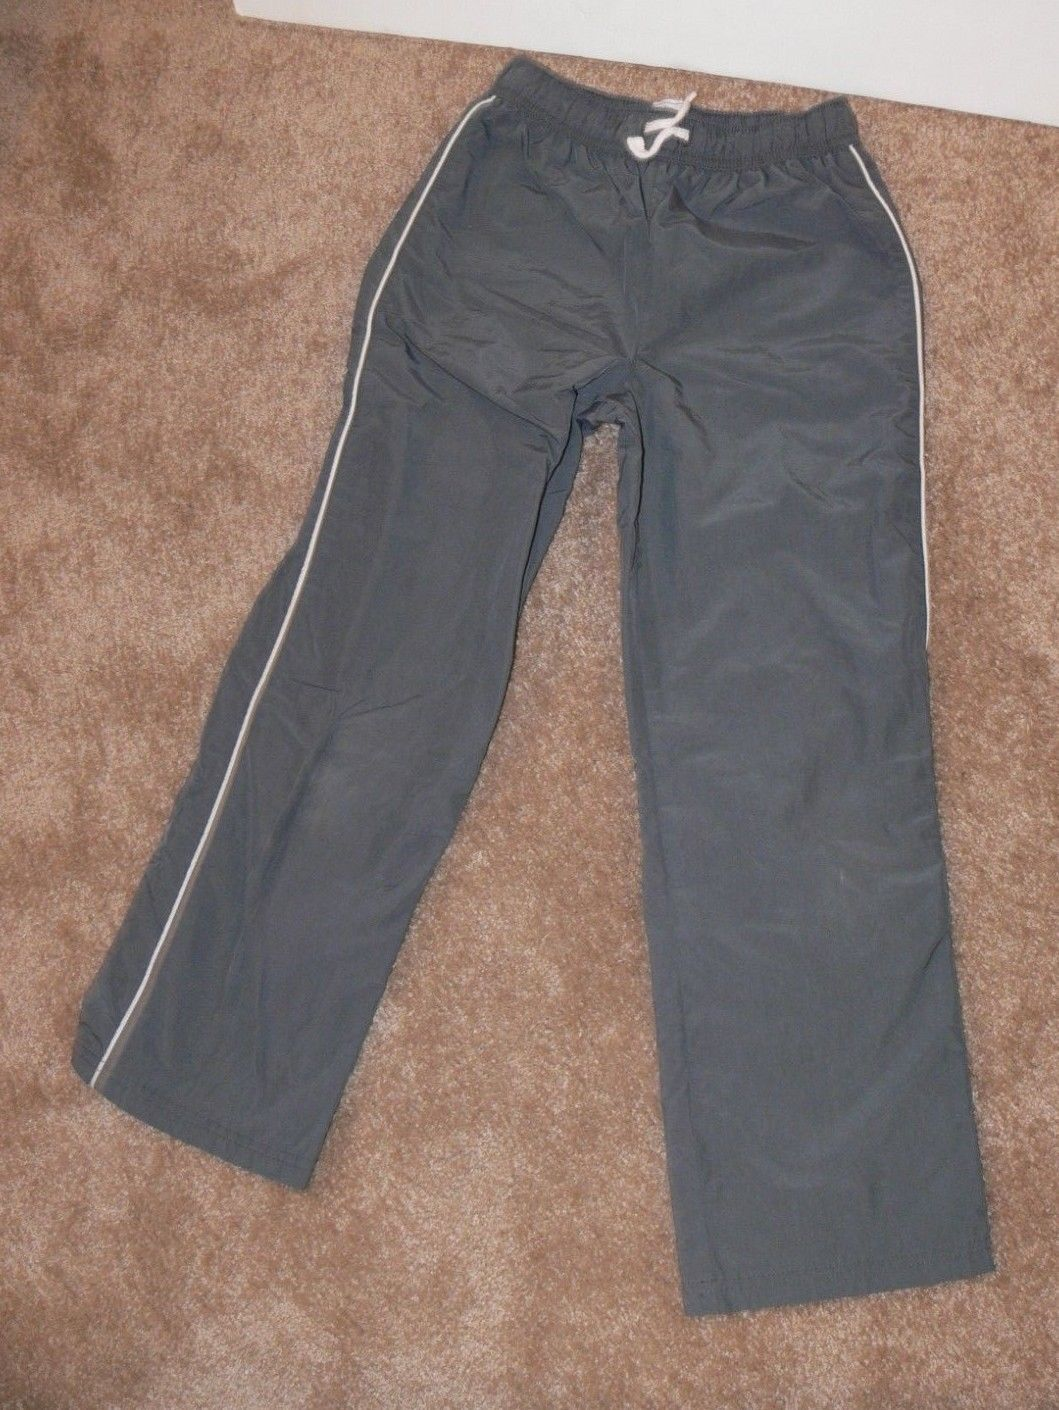 Primary image for Children's Place GRAY DRAWSTRING ATHLETIC Pants Size M 7/8 ek